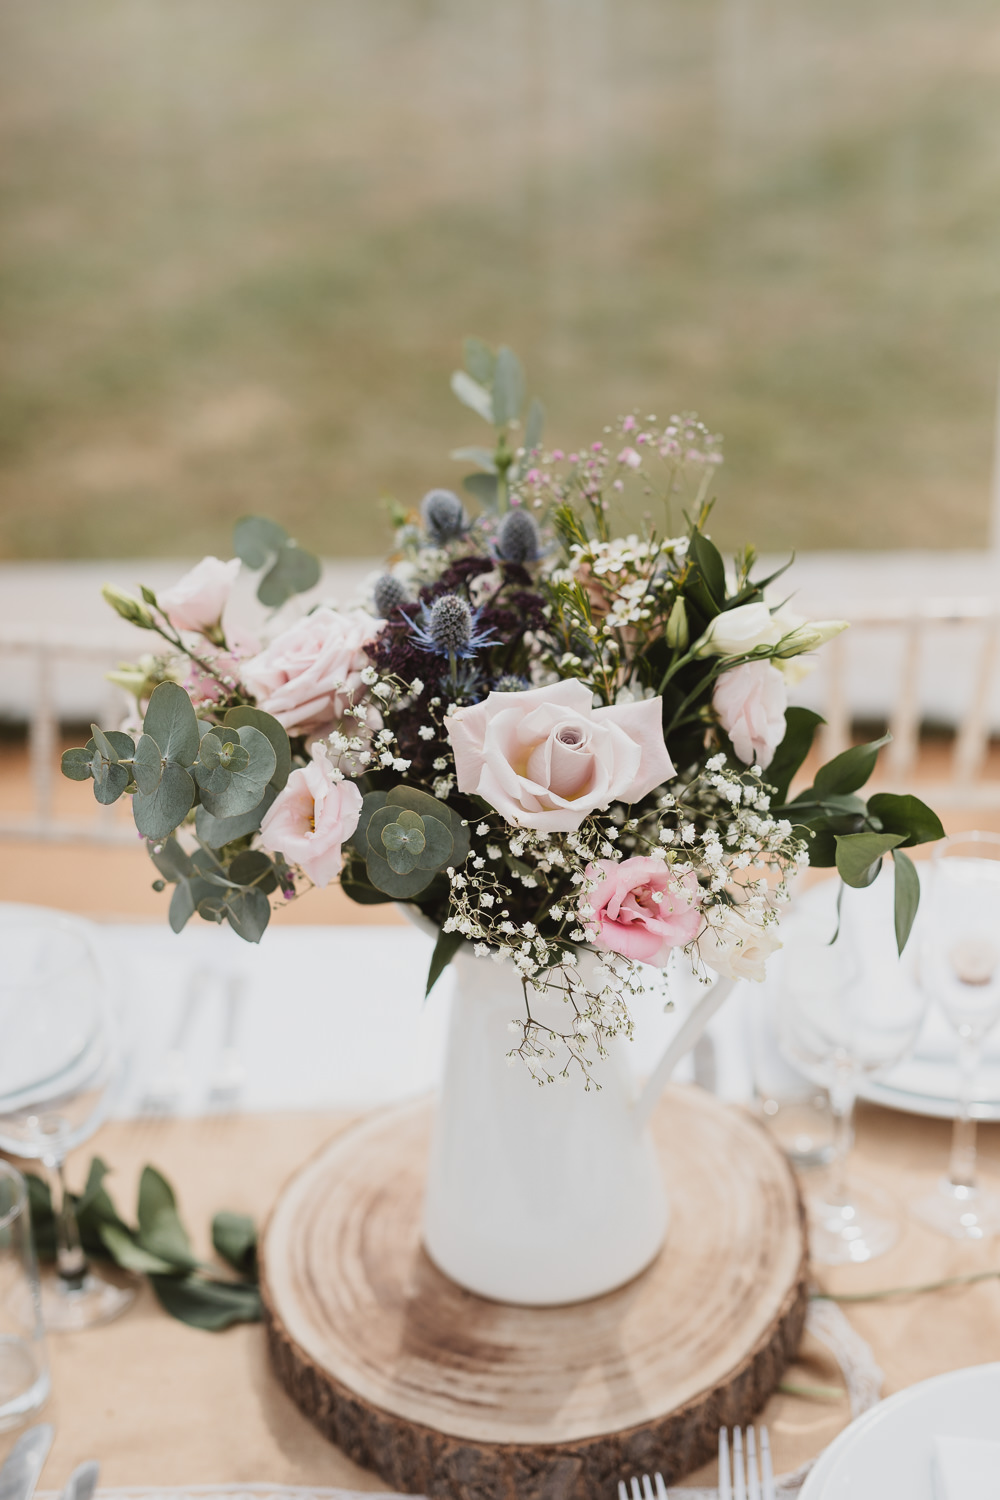 Flowers Jug Rose Thistle Eucalyptus Log Slice Centrepiece Clear Marquee Wedding Sarah Brookes Photography